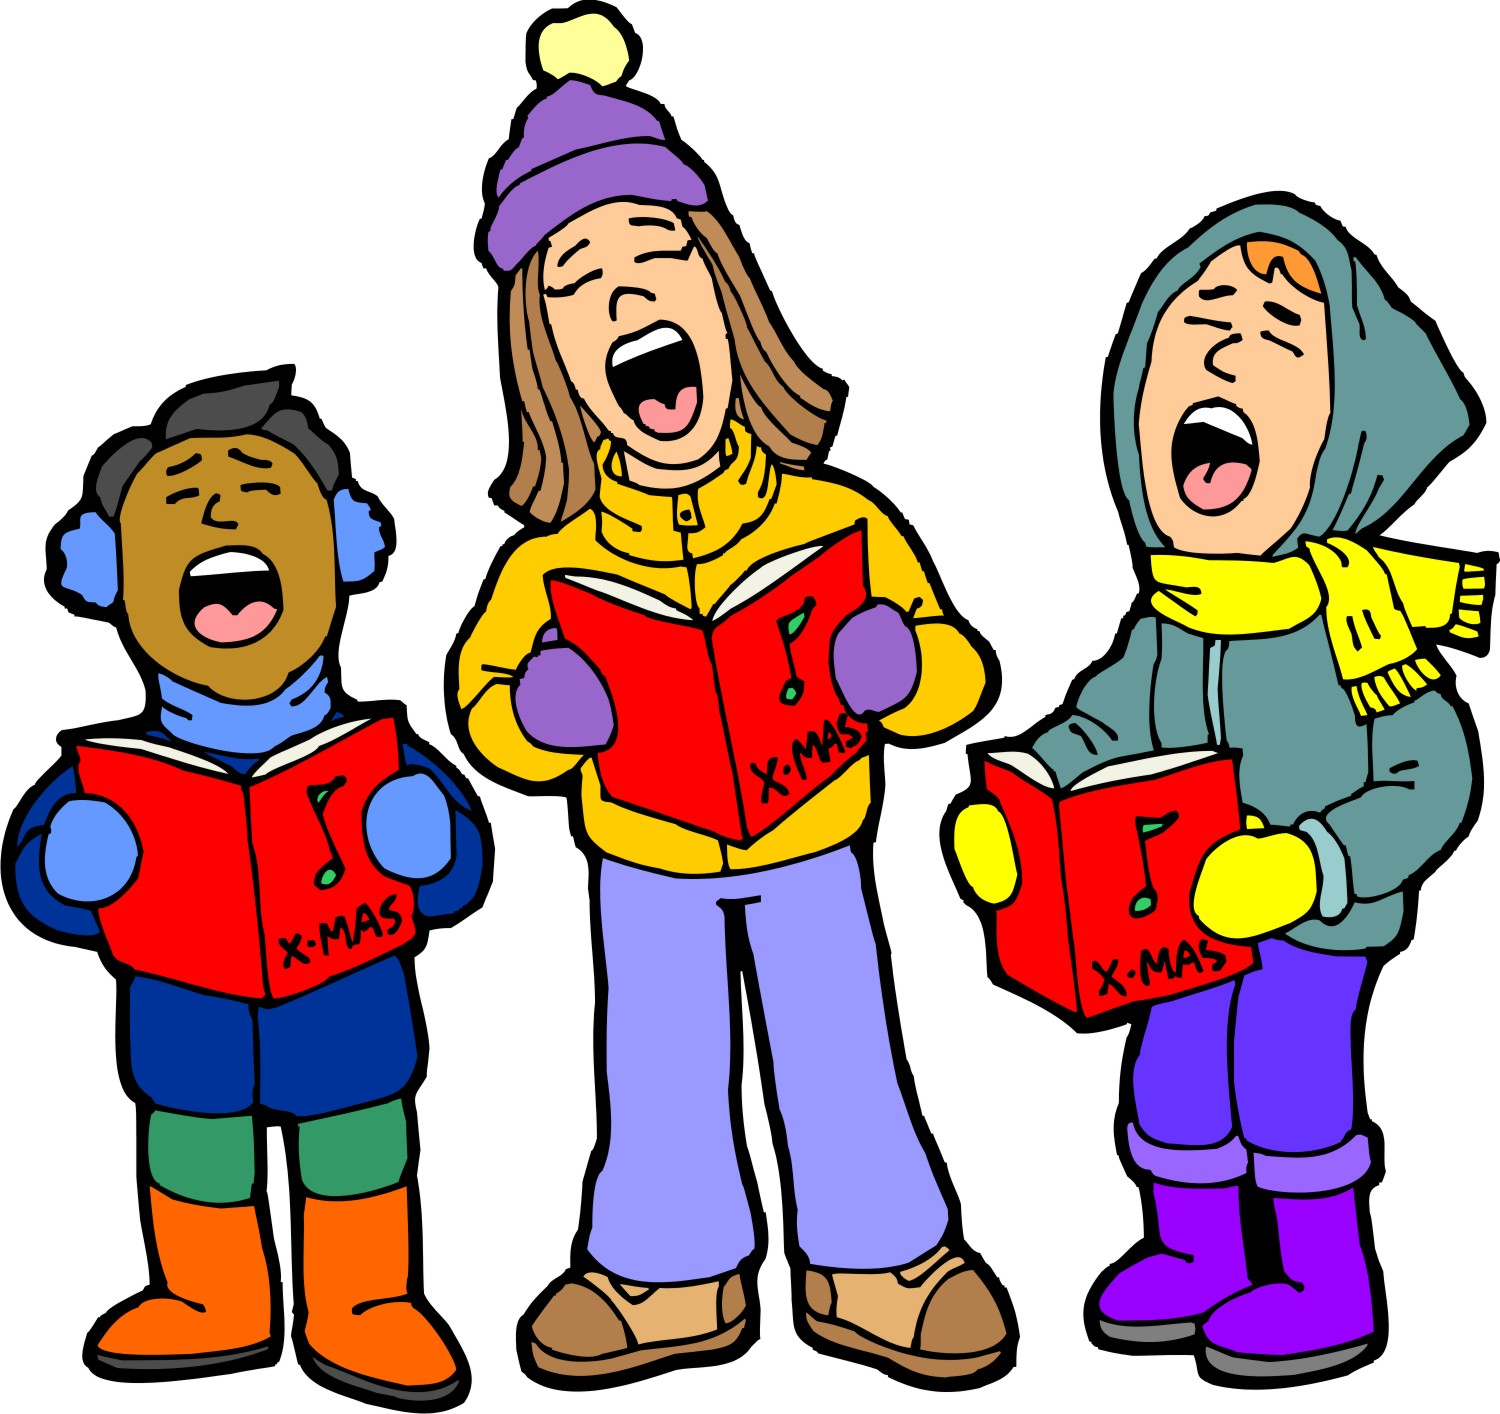 Monroe school sing along. Caroling clipart performance